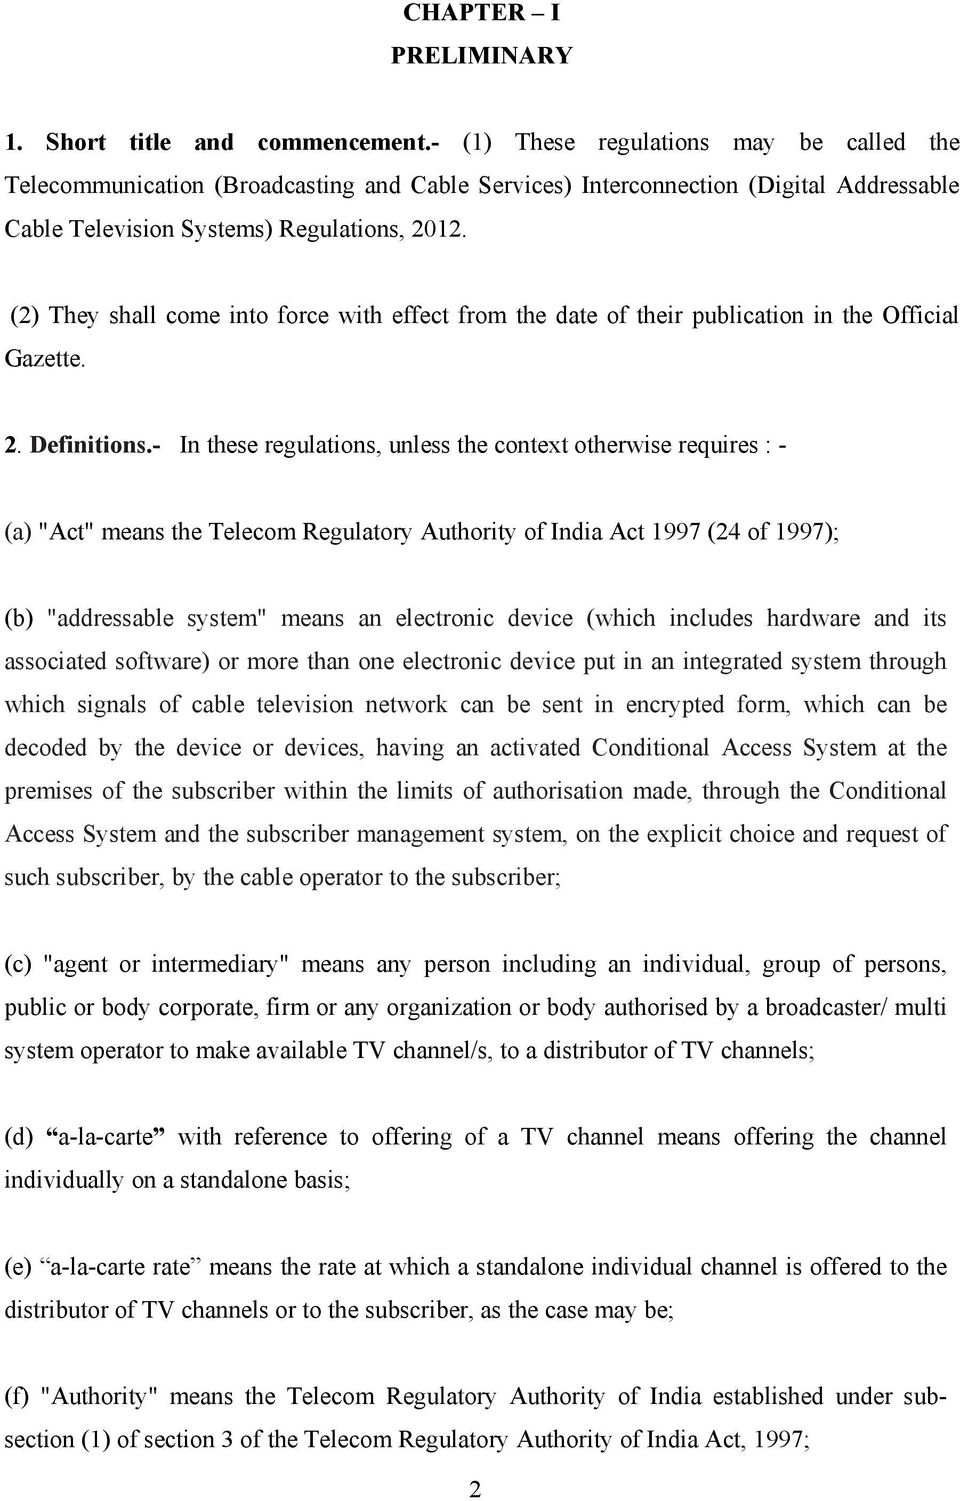 (2) They shall come into force with effect from the date of their publication in the Official Gazette. 2. Definitions.